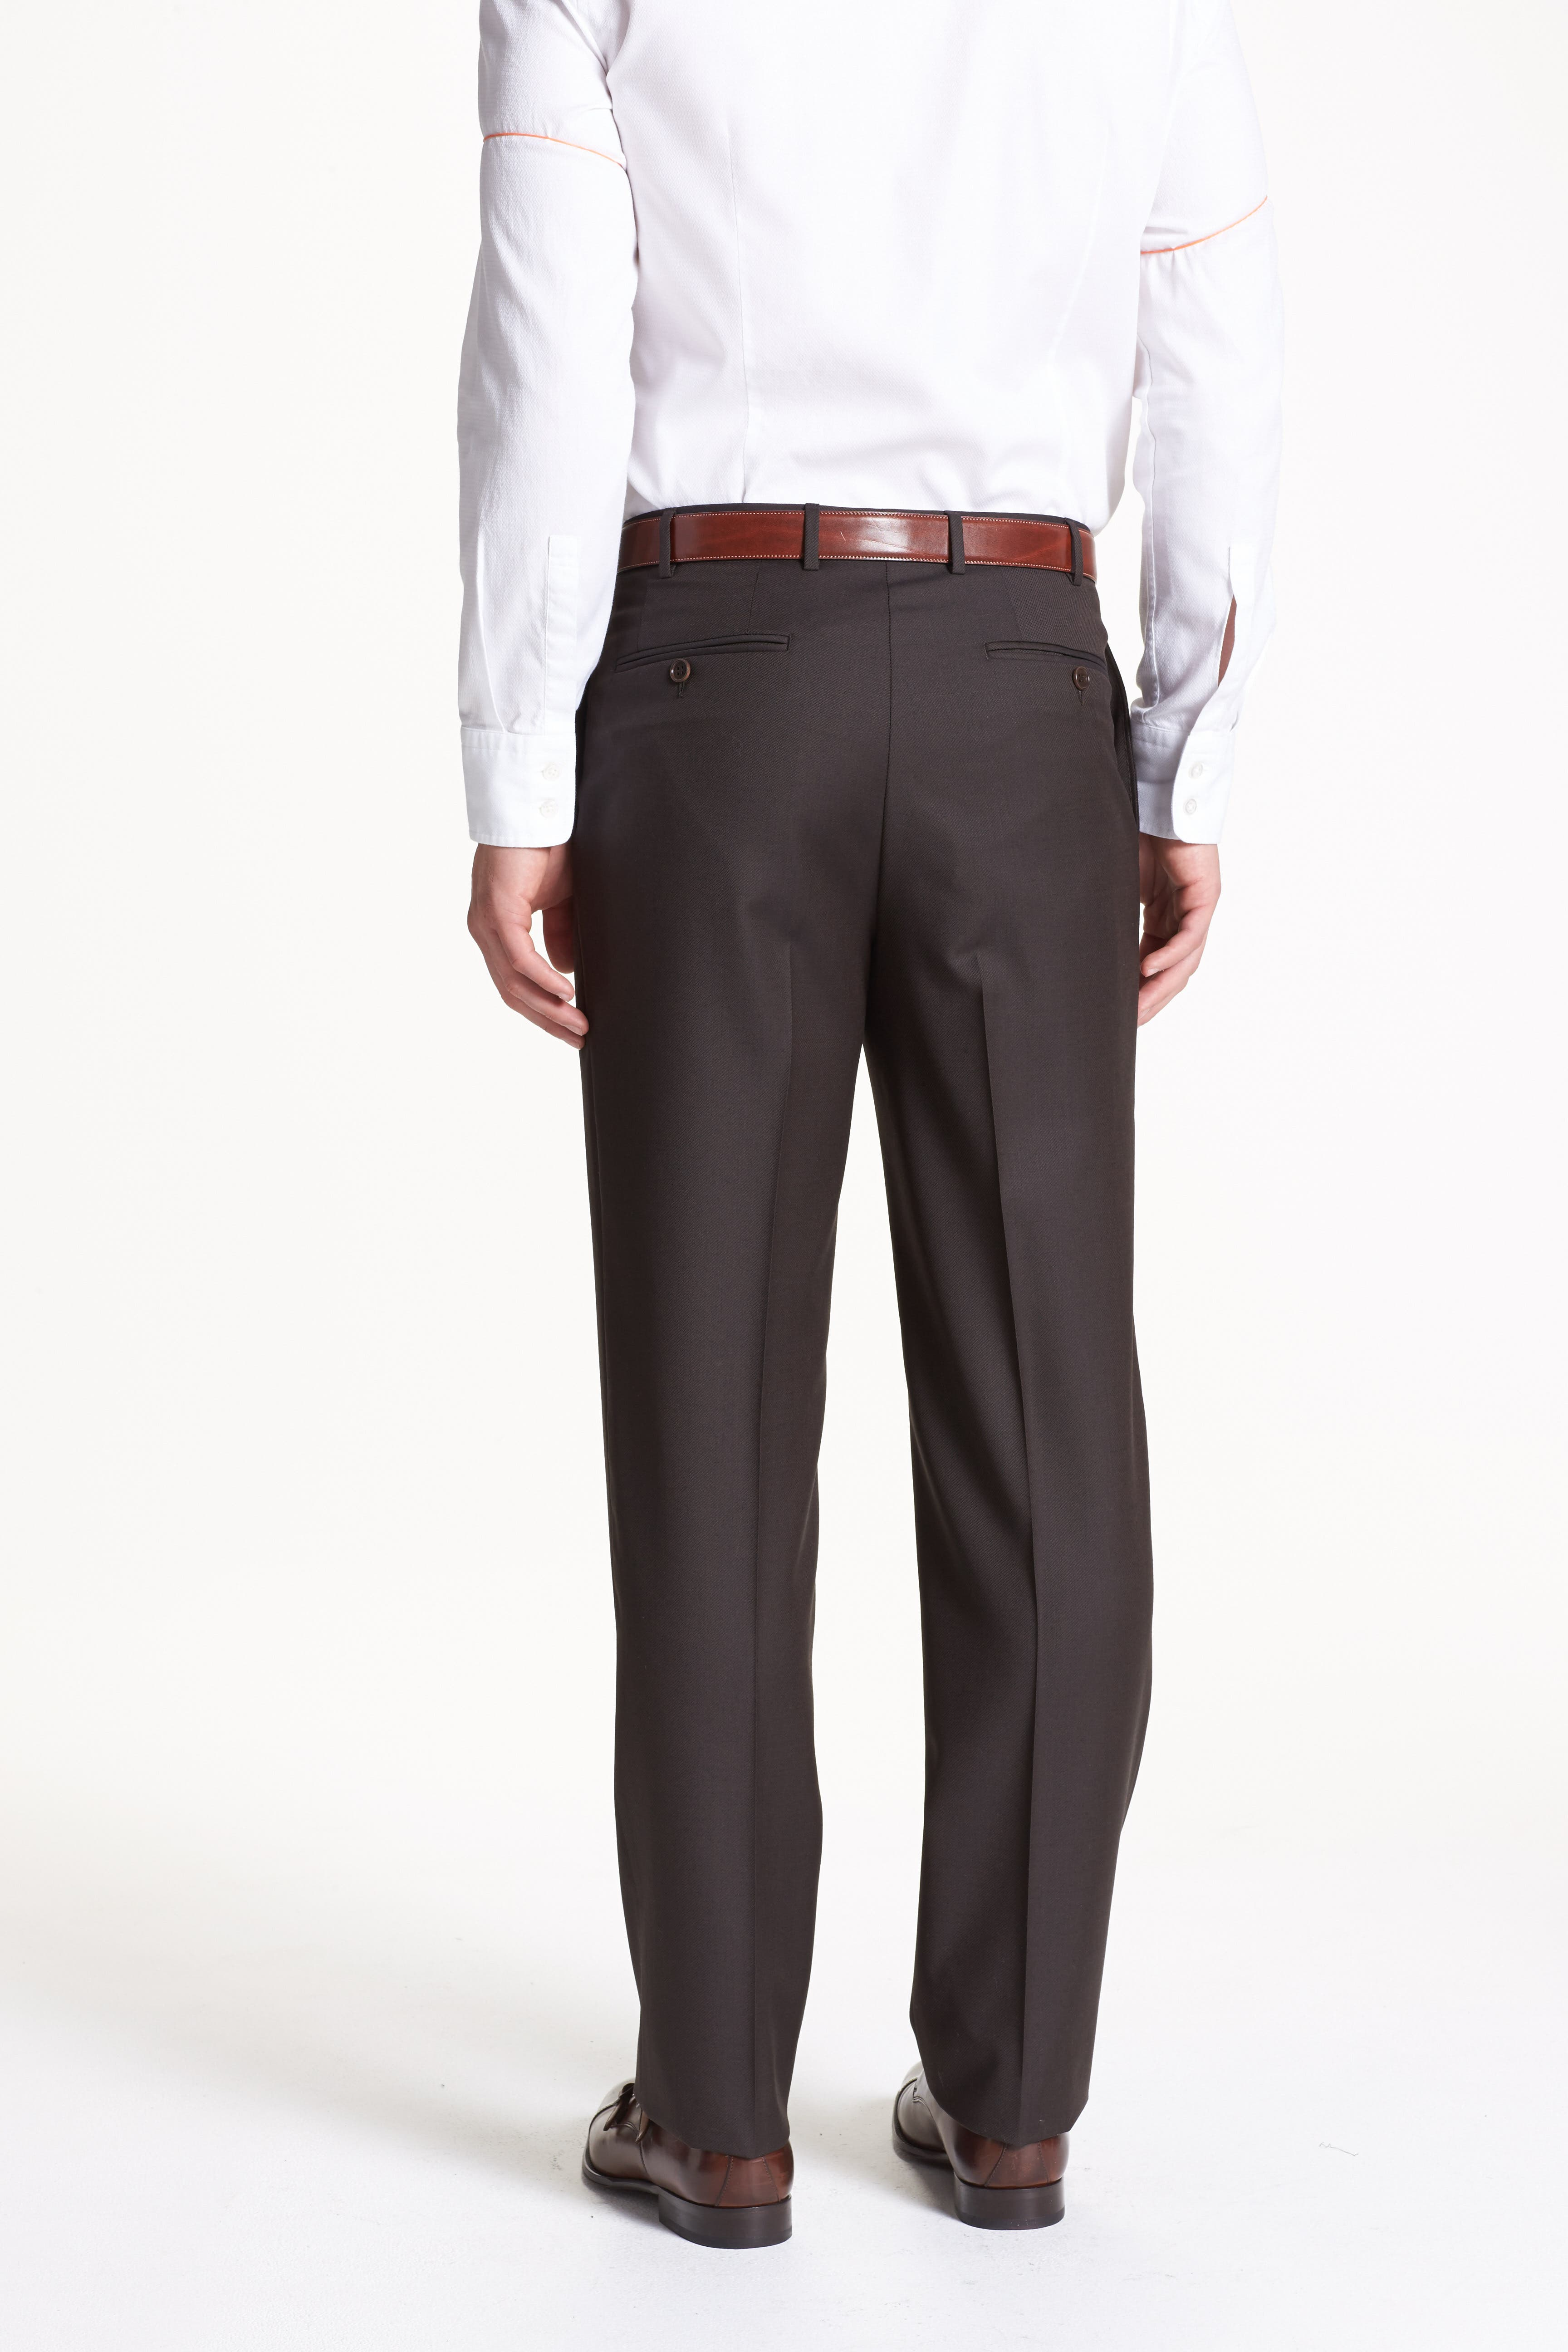 CANALI, Flat Front Solid Wool Trousers, Alternate thumbnail 2, color, 201